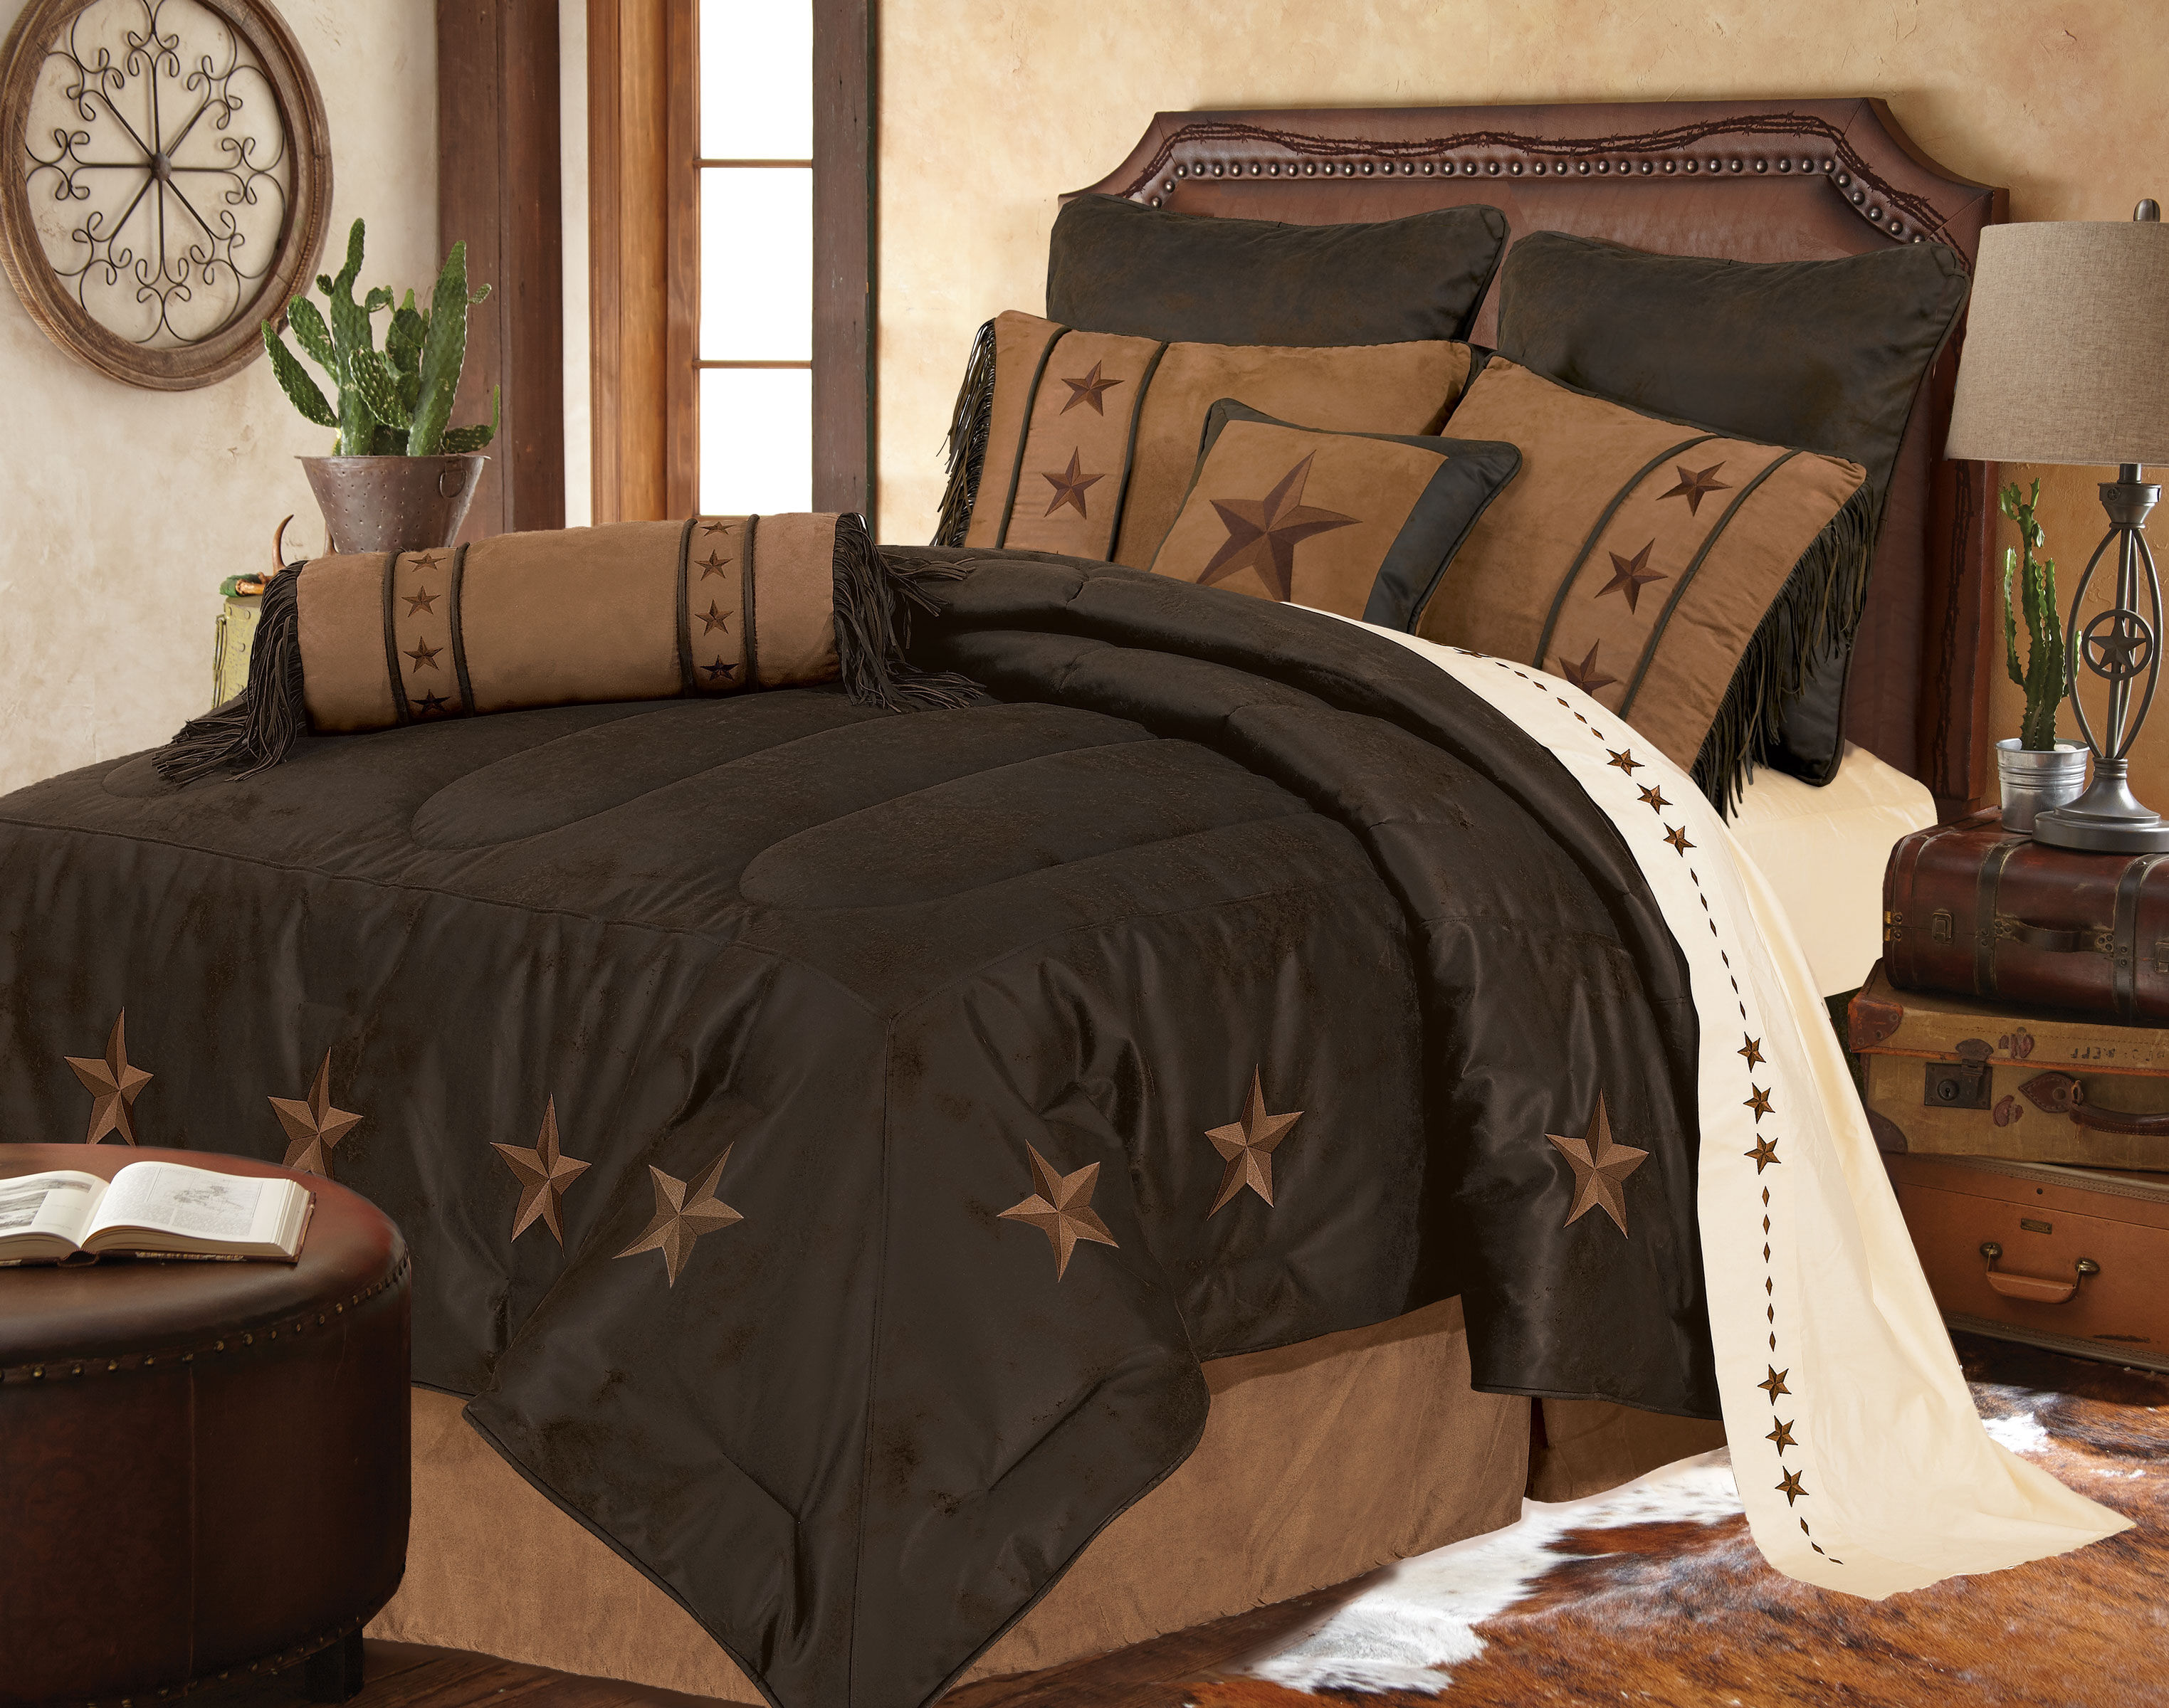 Marvelous HiEnd Accents Laredo Star Embroidery Bed In A Bag Set   King Size,  Chocolate,